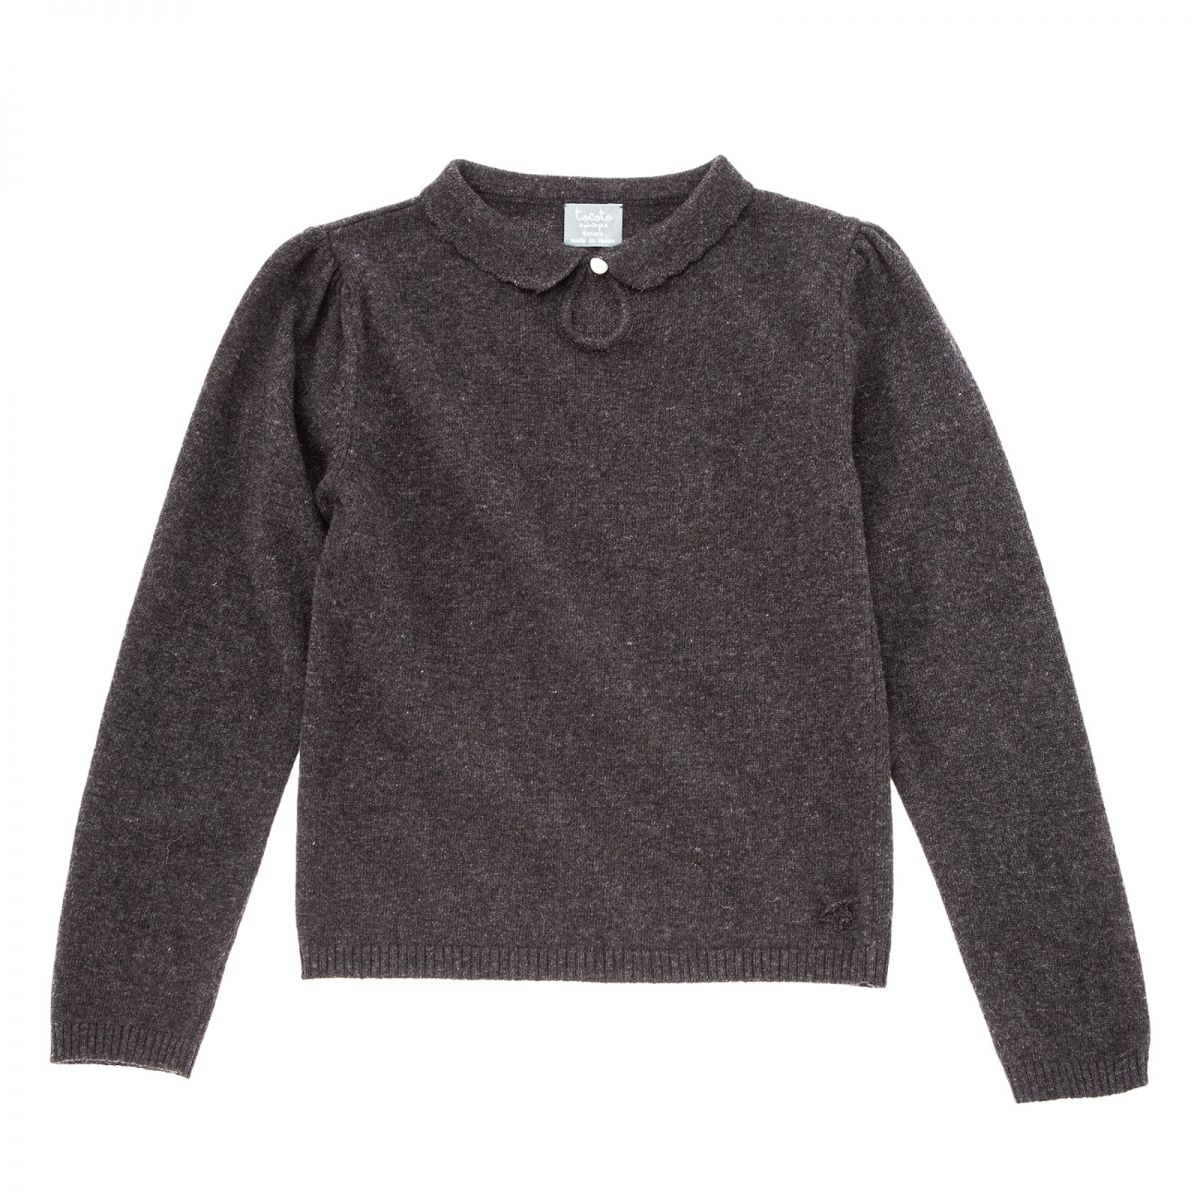 Tocoto Vintage - Knitted sweater black - 1